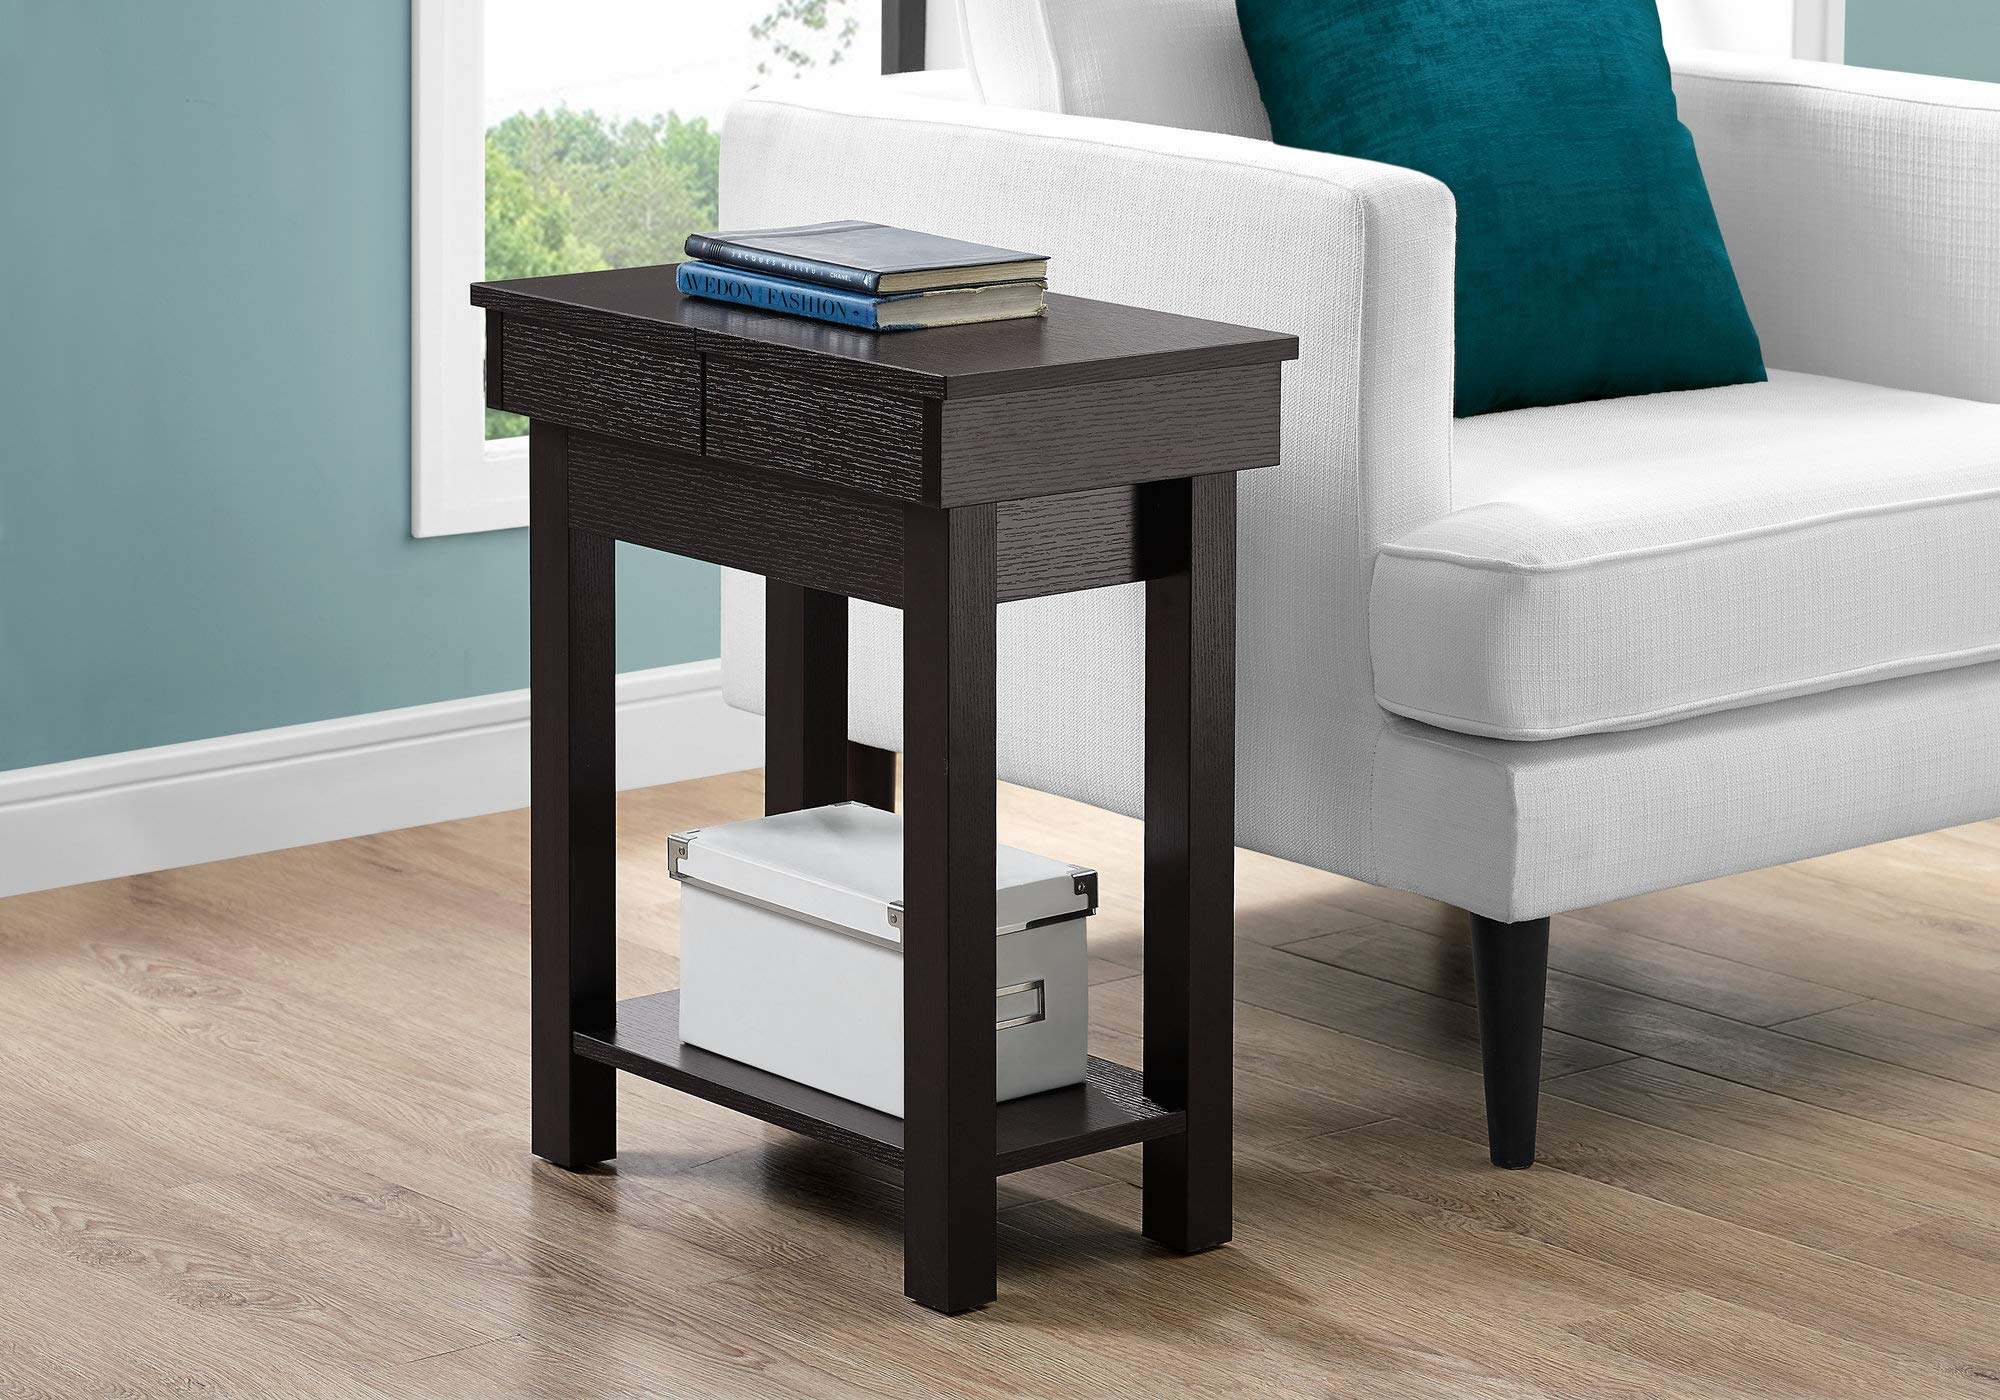 Monarch Specialties ACCENT TABLE - 24'' H/CAPPUCCINO WITH STORAGE